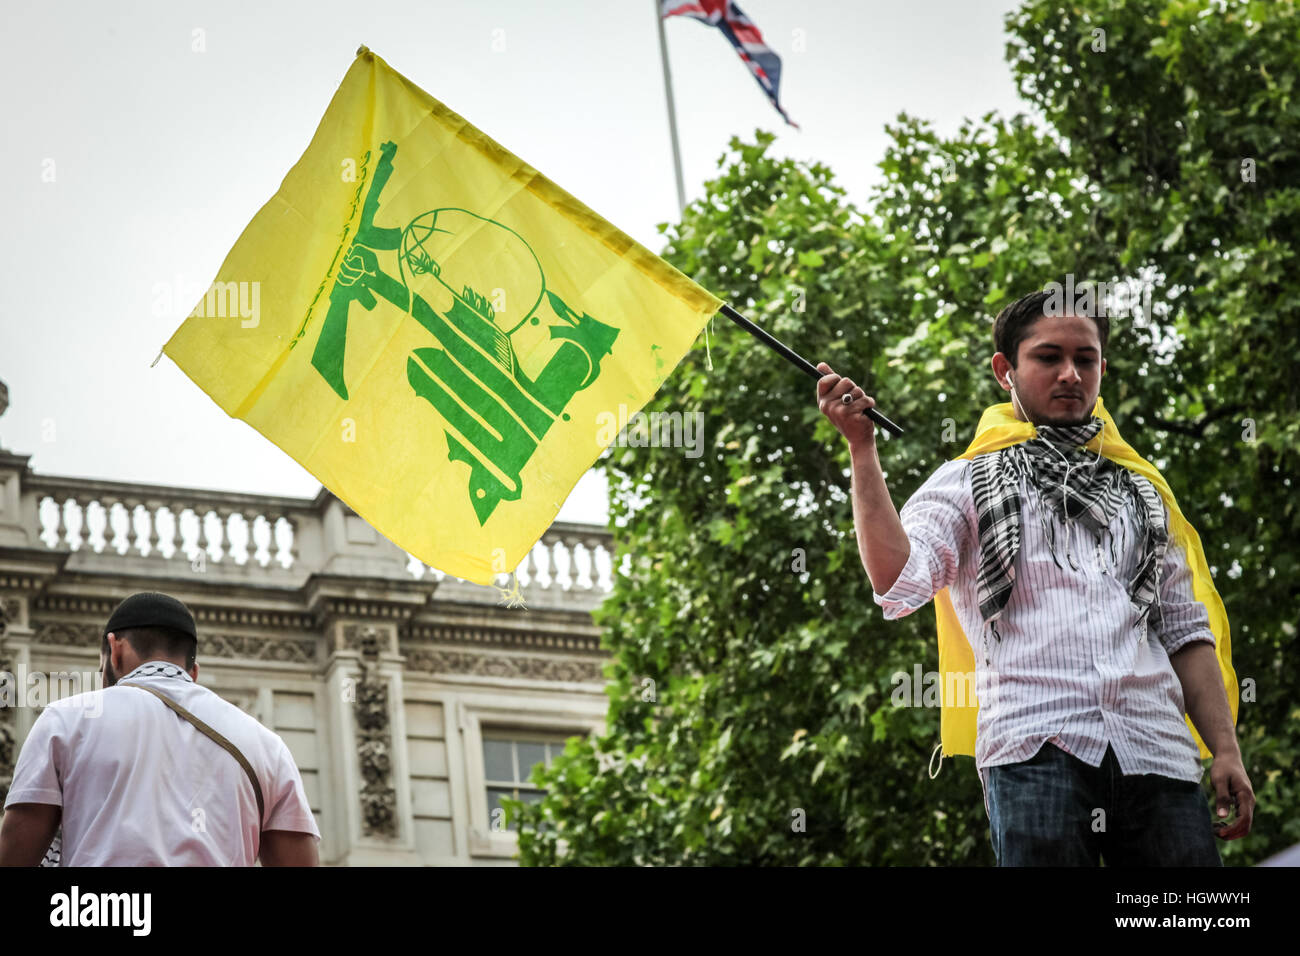 Supports wave flag of Hezbollah. Protest march against the violence used by Israeli soldiers during the Gaza Flotilla - Stock Image